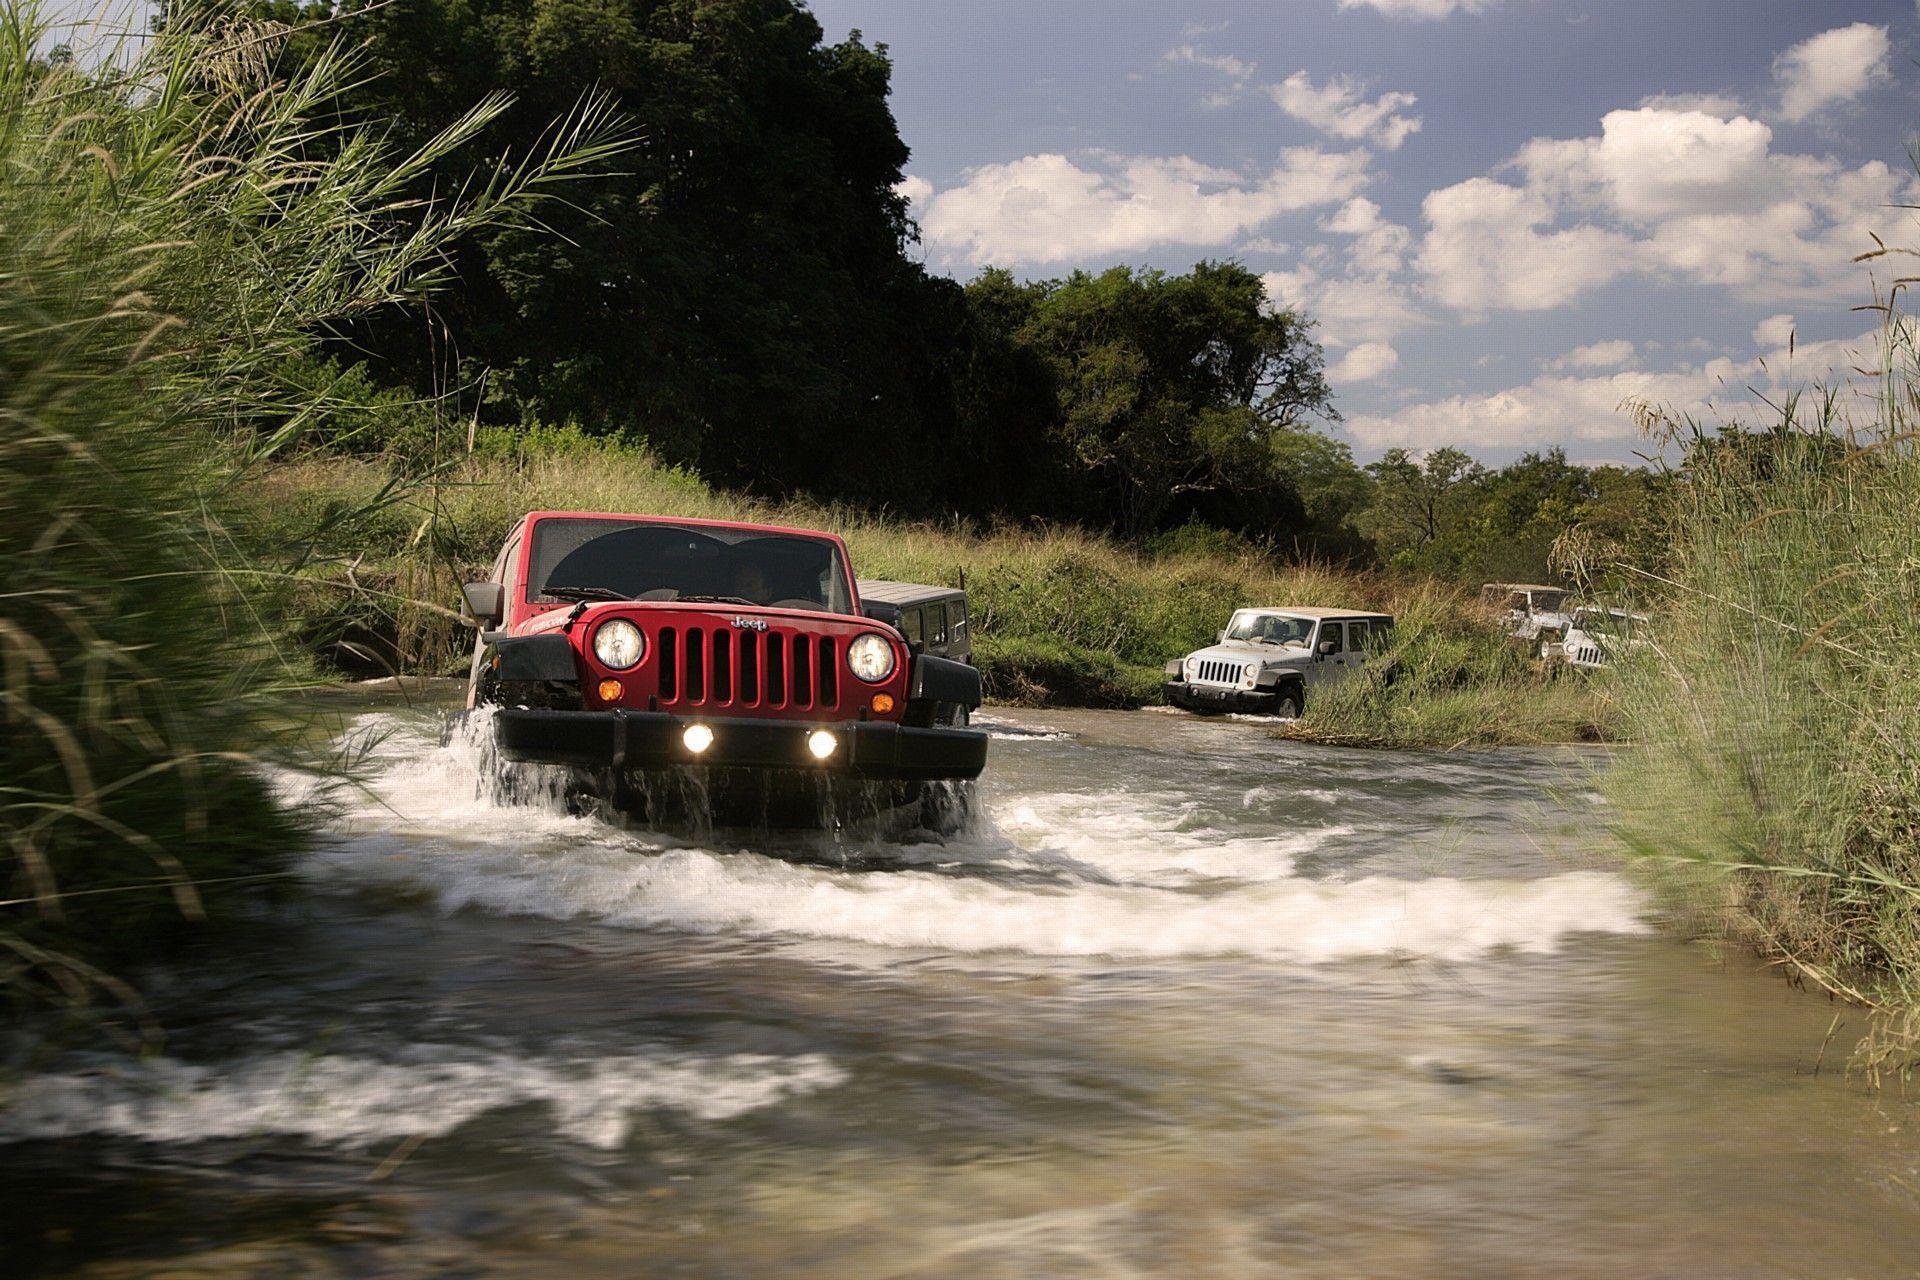 Wallpaper Jeep Offroad >> Jeep Wrangler Wallpapers - Wallpaper Cave